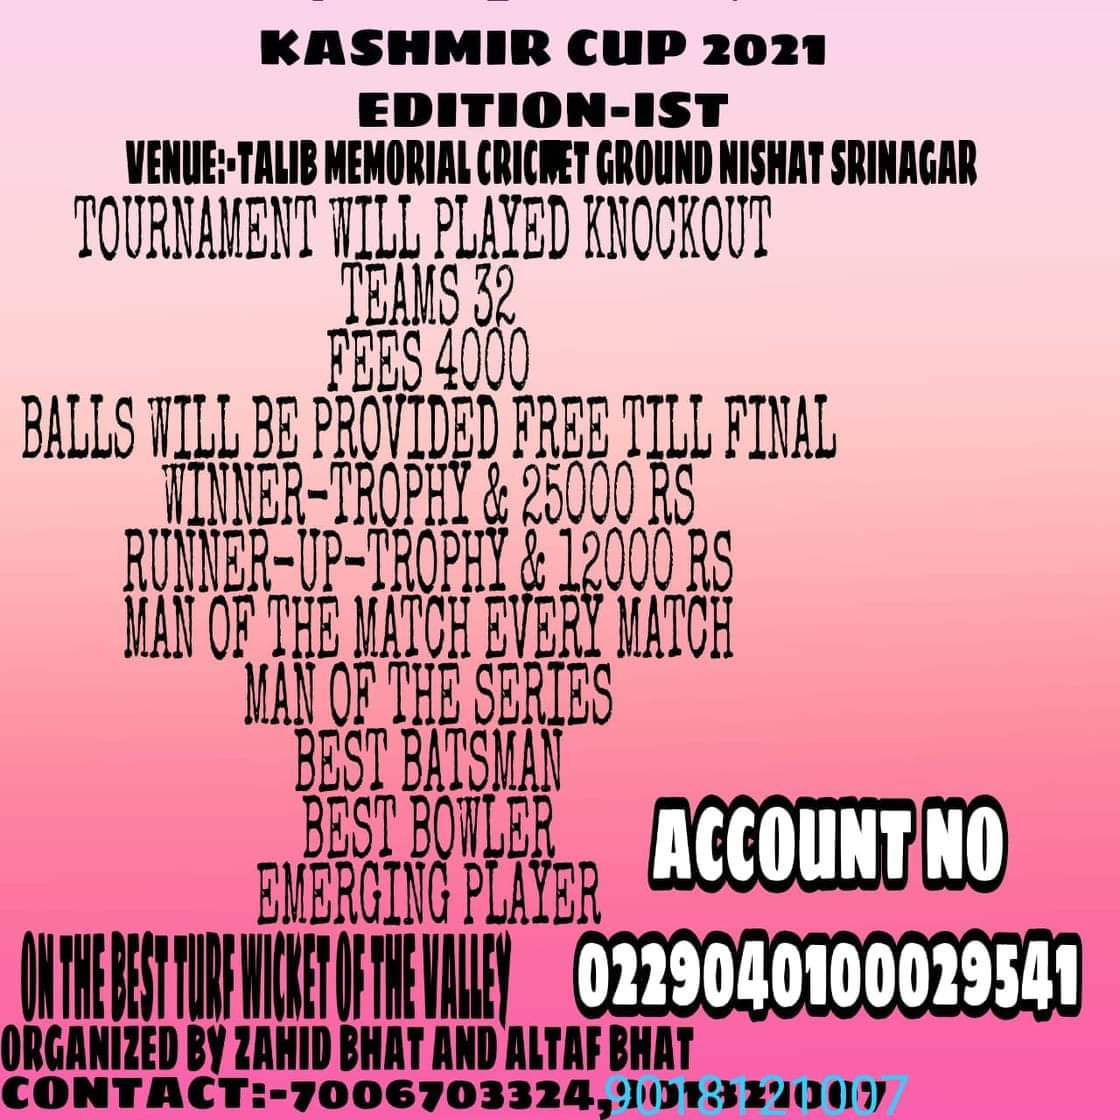 Kashmir Cup-2021 T20 tourney to be held at Nishat